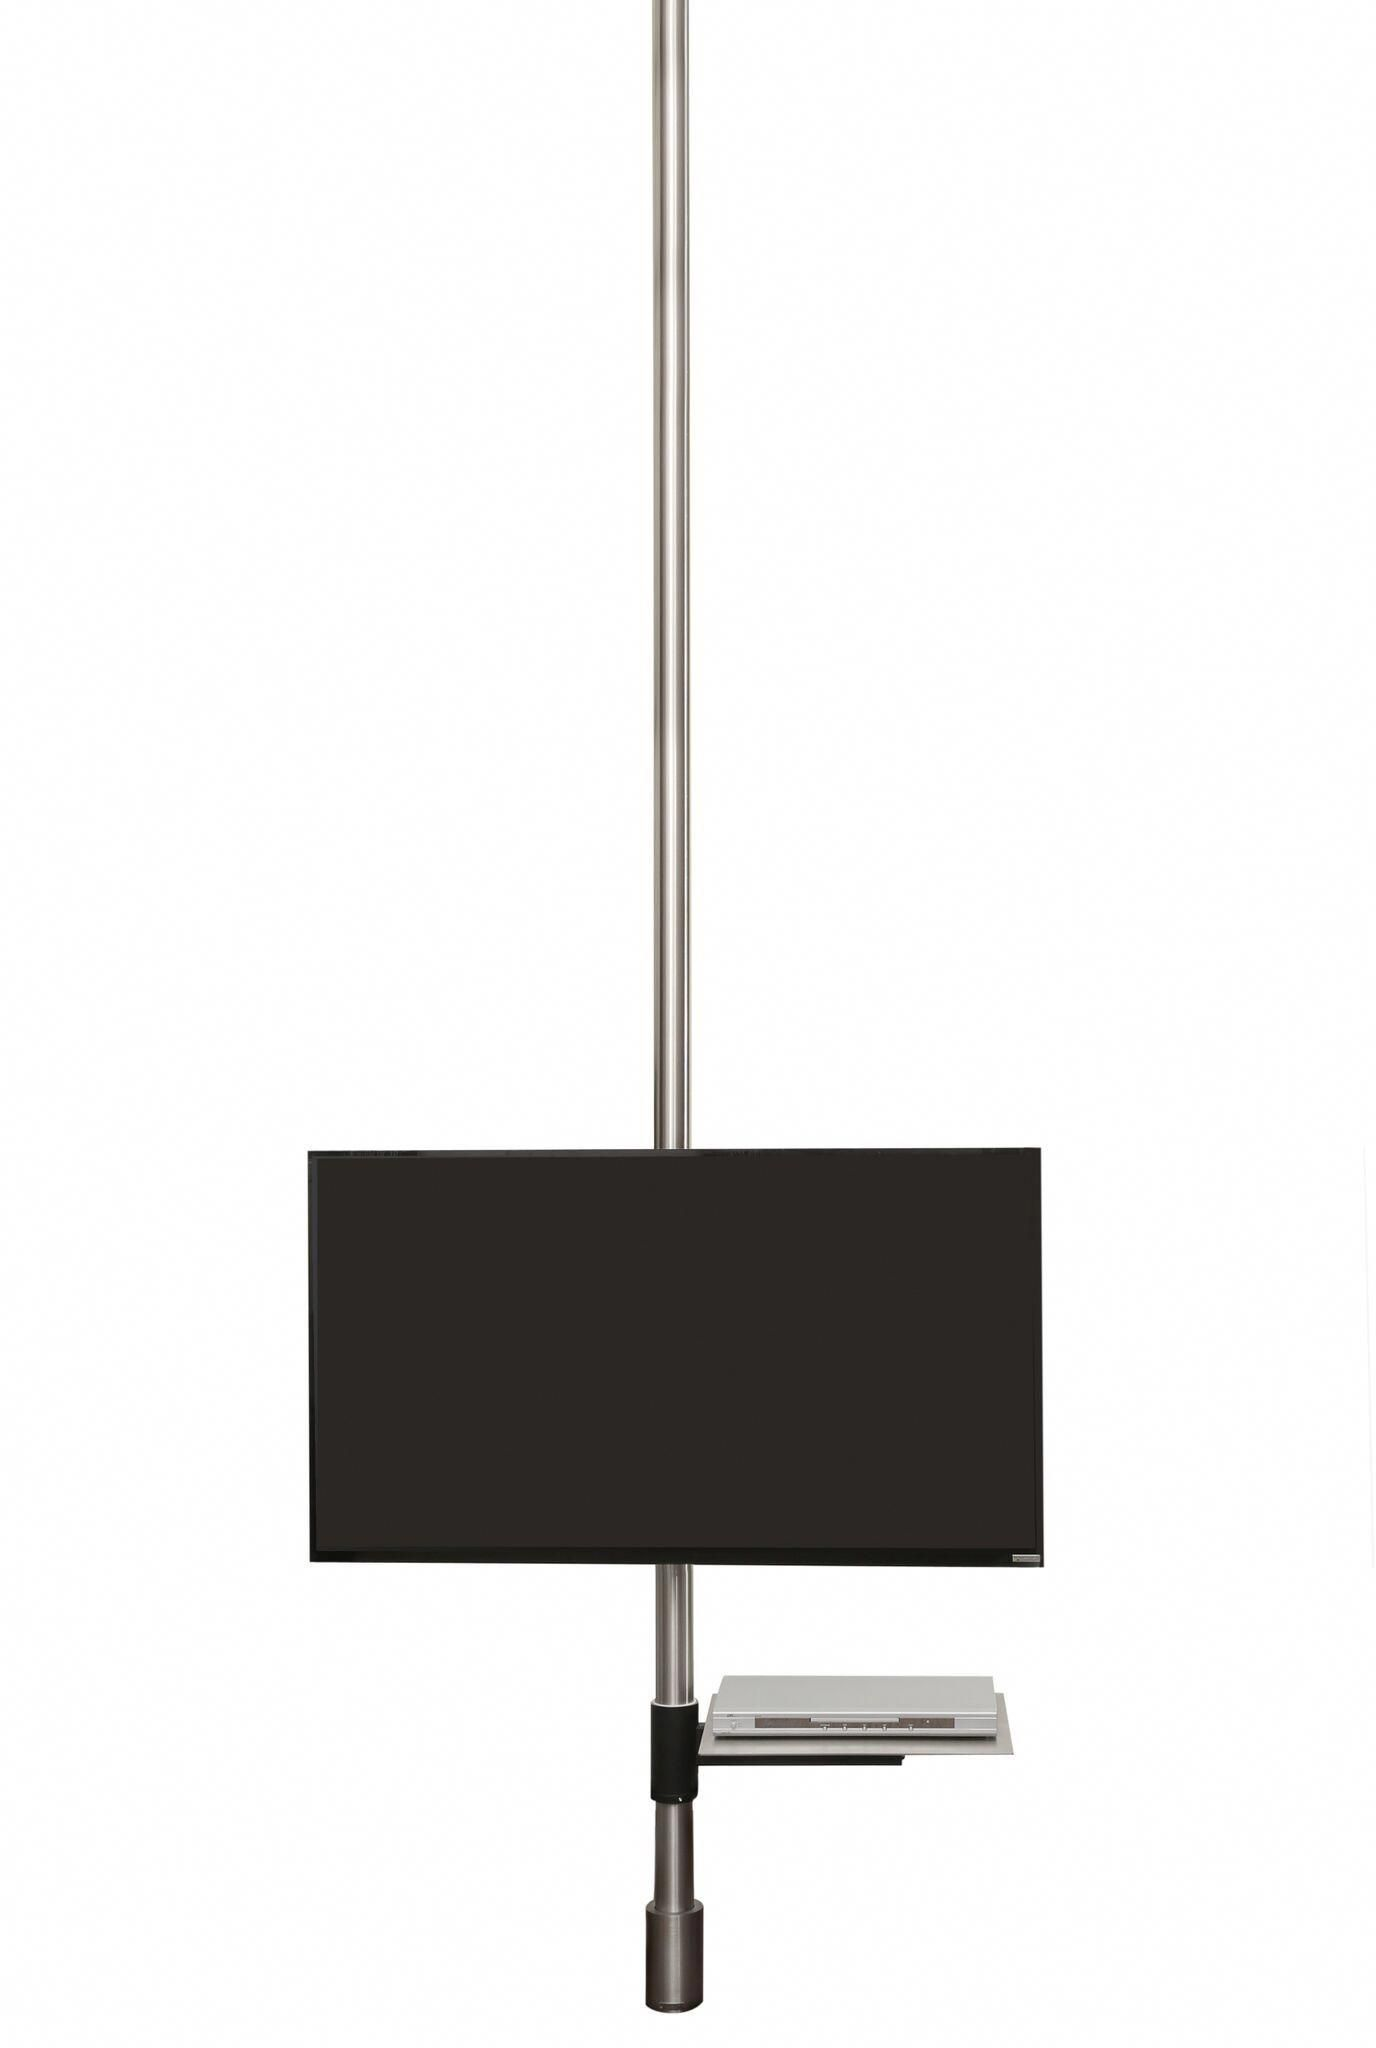 ... Stands by Liliana Willis. In this model, a stainless steel anchoring  pivotal column provides the basis for a swiveling fdc0d4c8b5f2